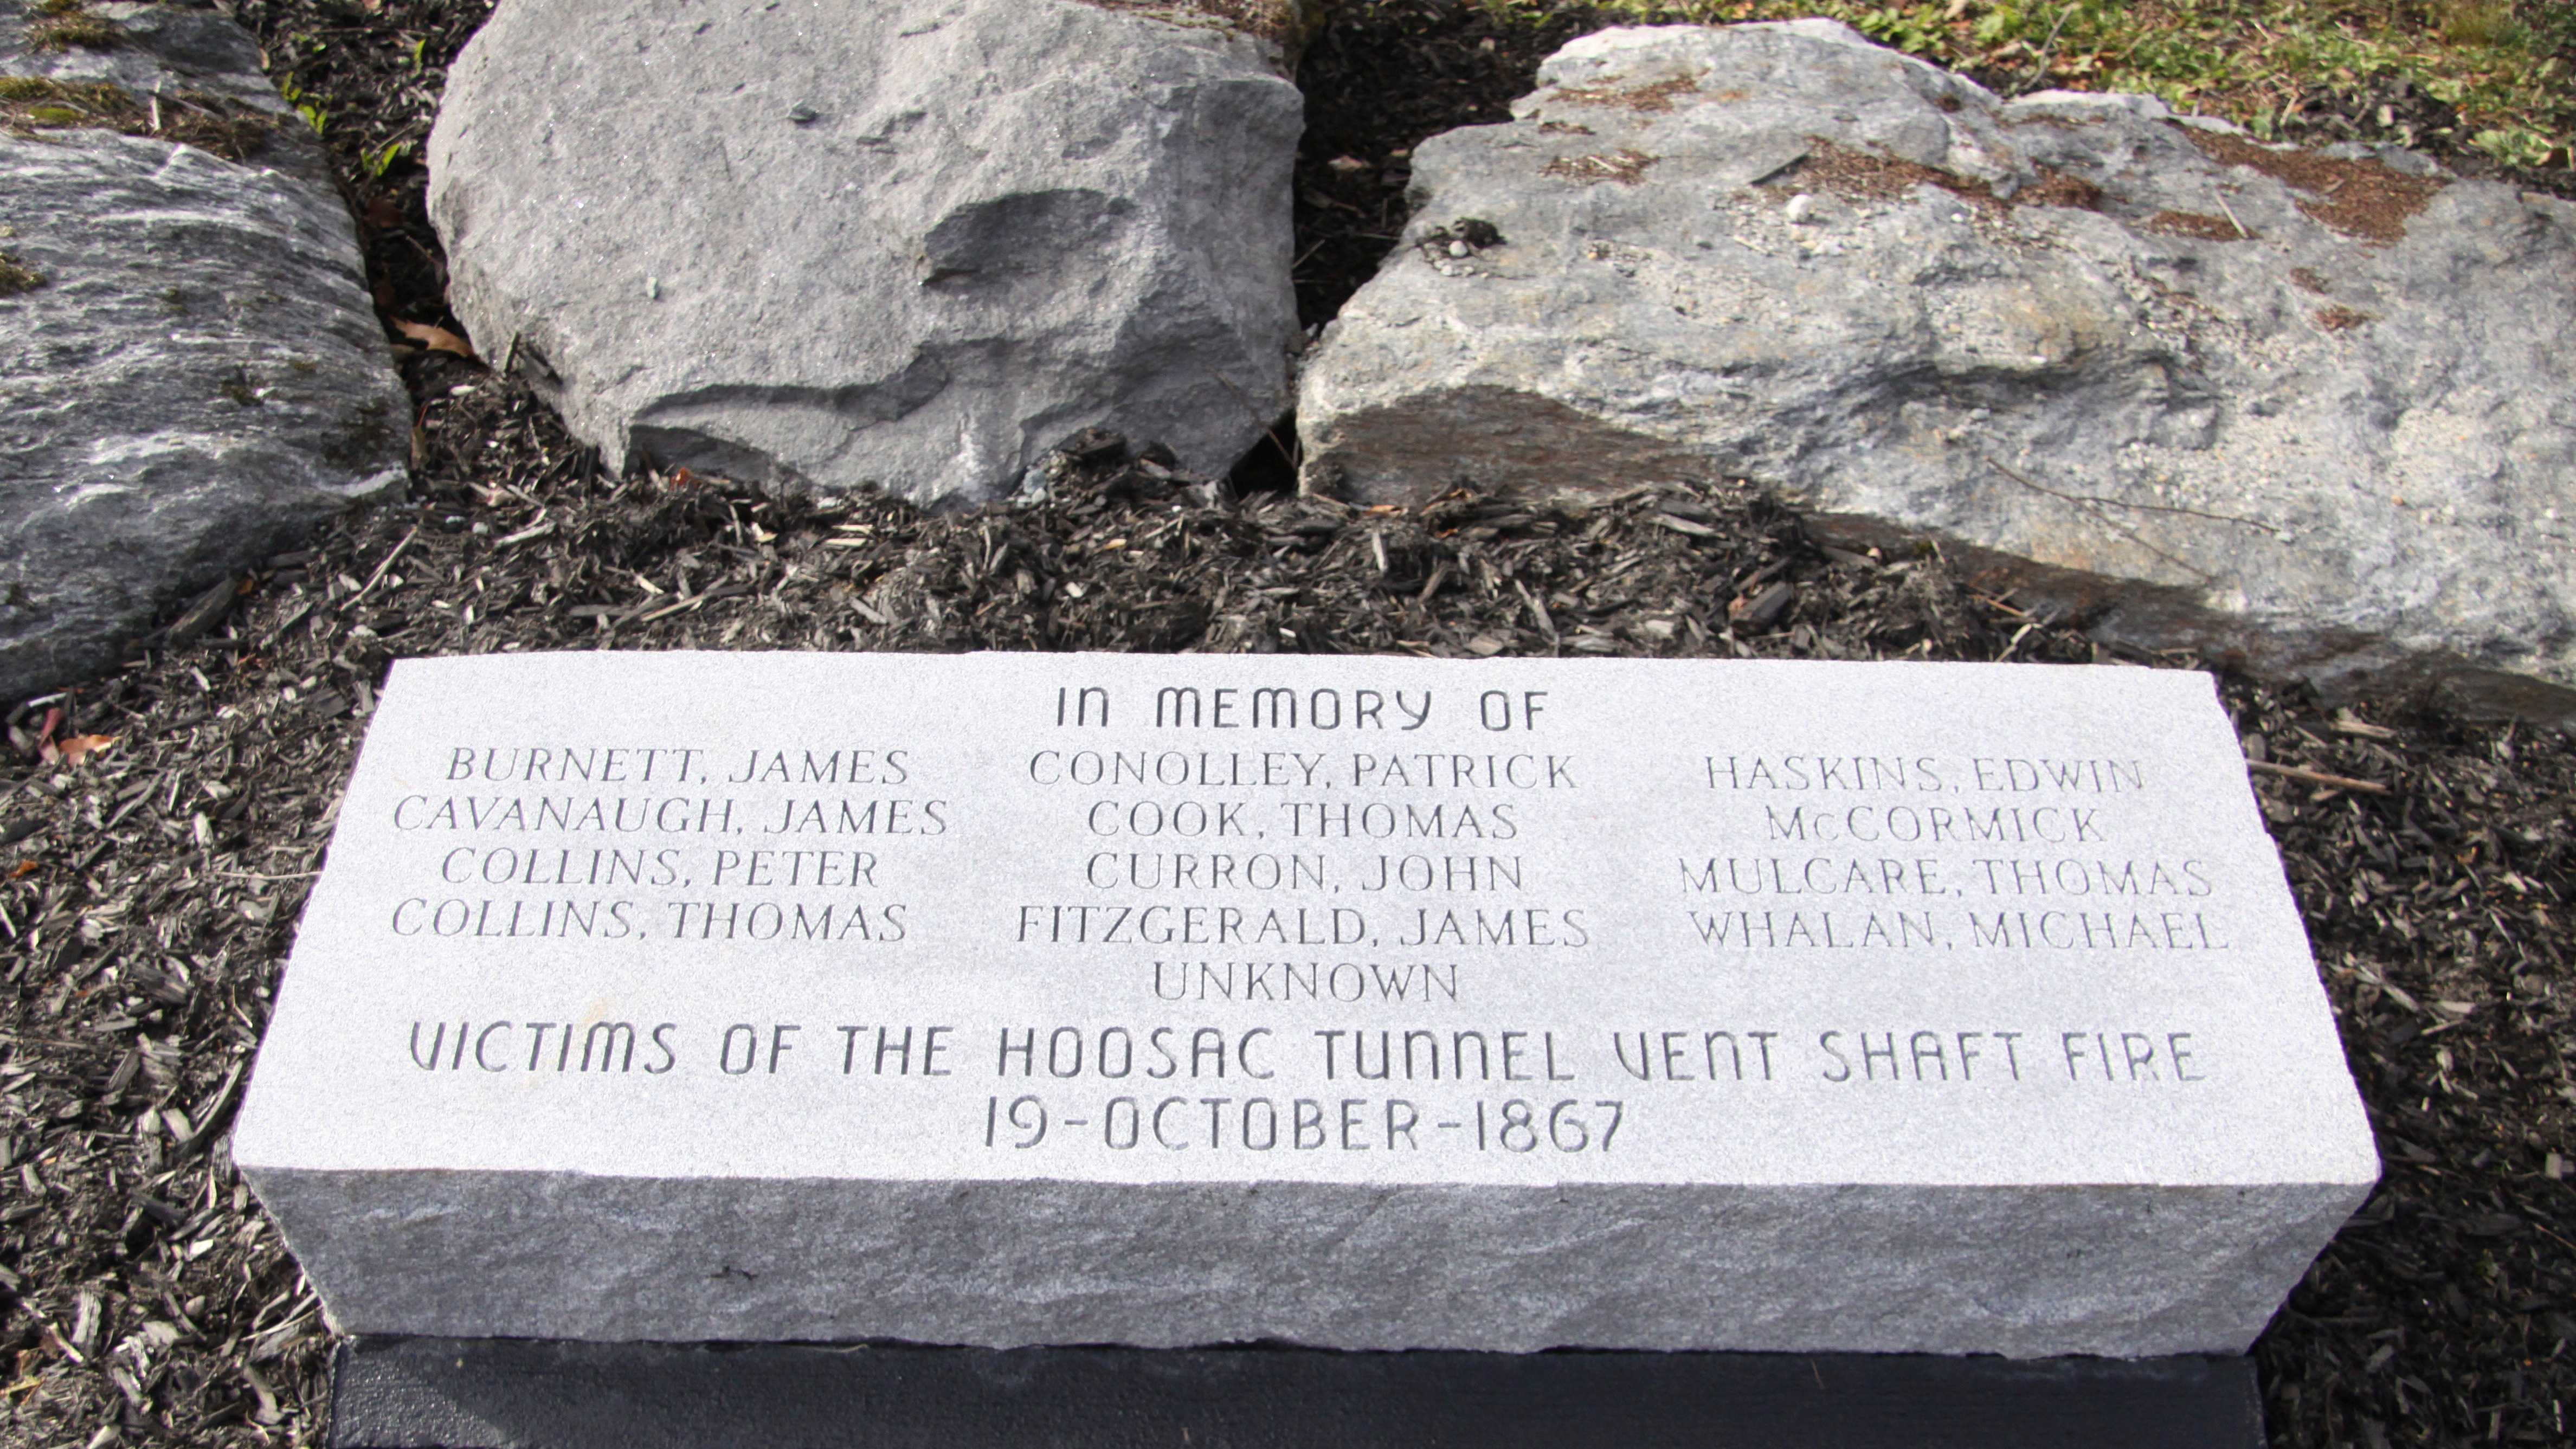 Victims of the Hoosac Tunnel shaft fire are not forgotten. The memorial to the workers is located on Old Shaft Road in Florida, Mass.